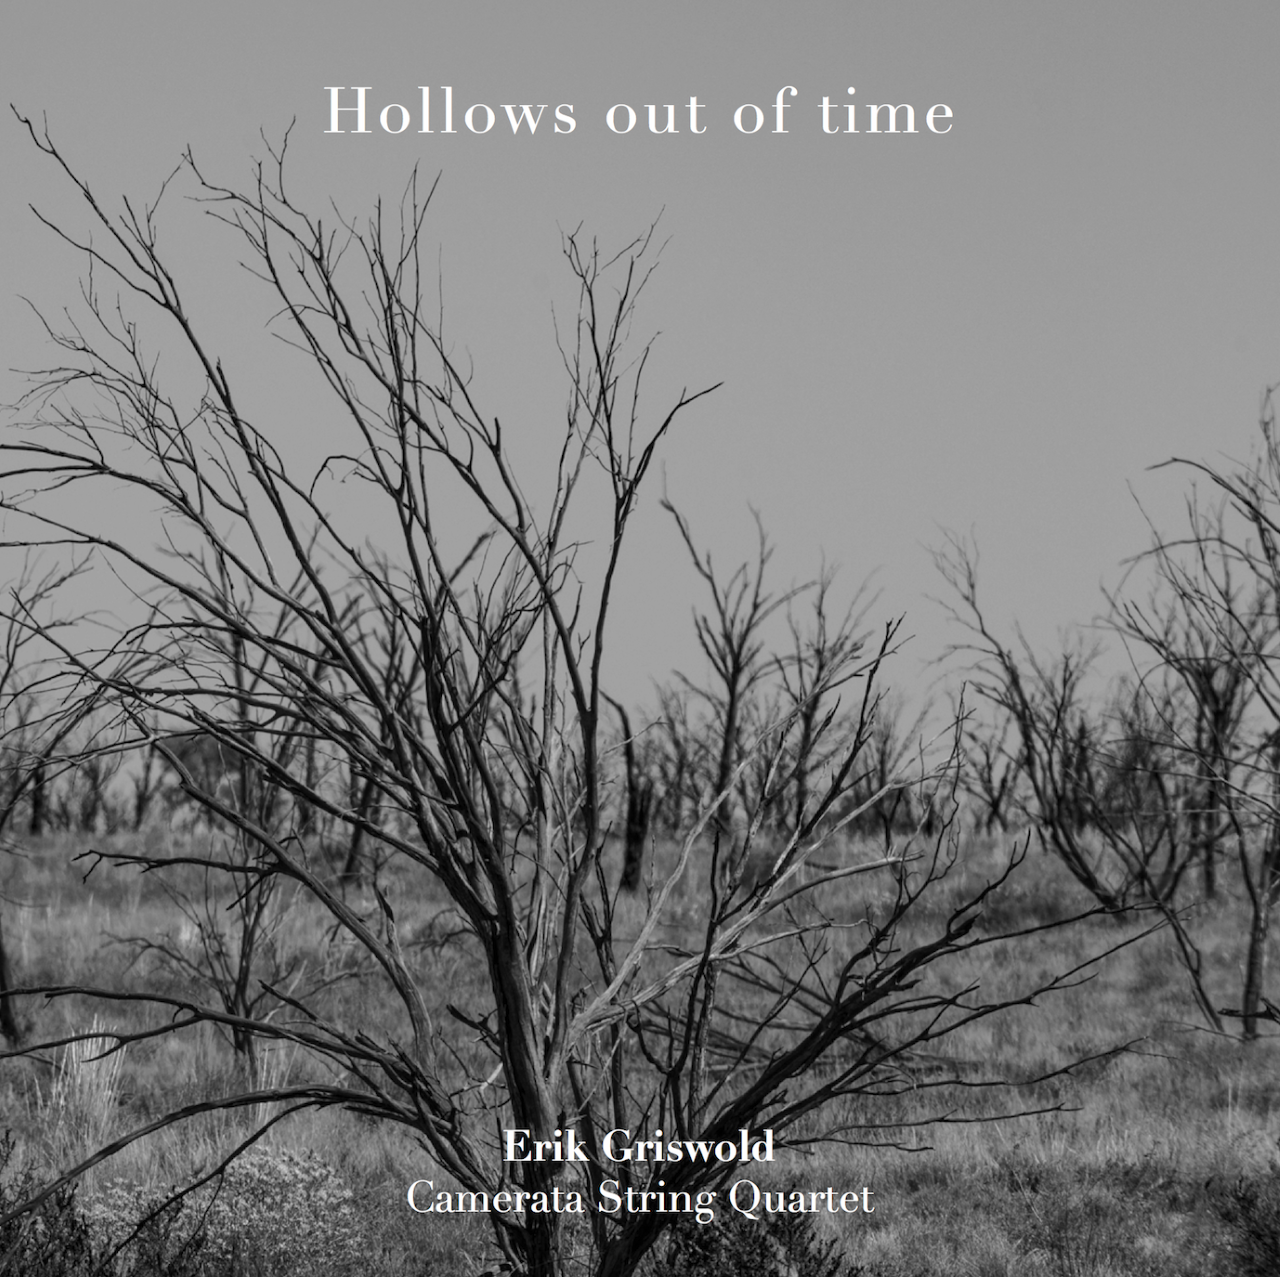 https://harriganslanecollective.bandcamp.com/album/hollows-out-of-time